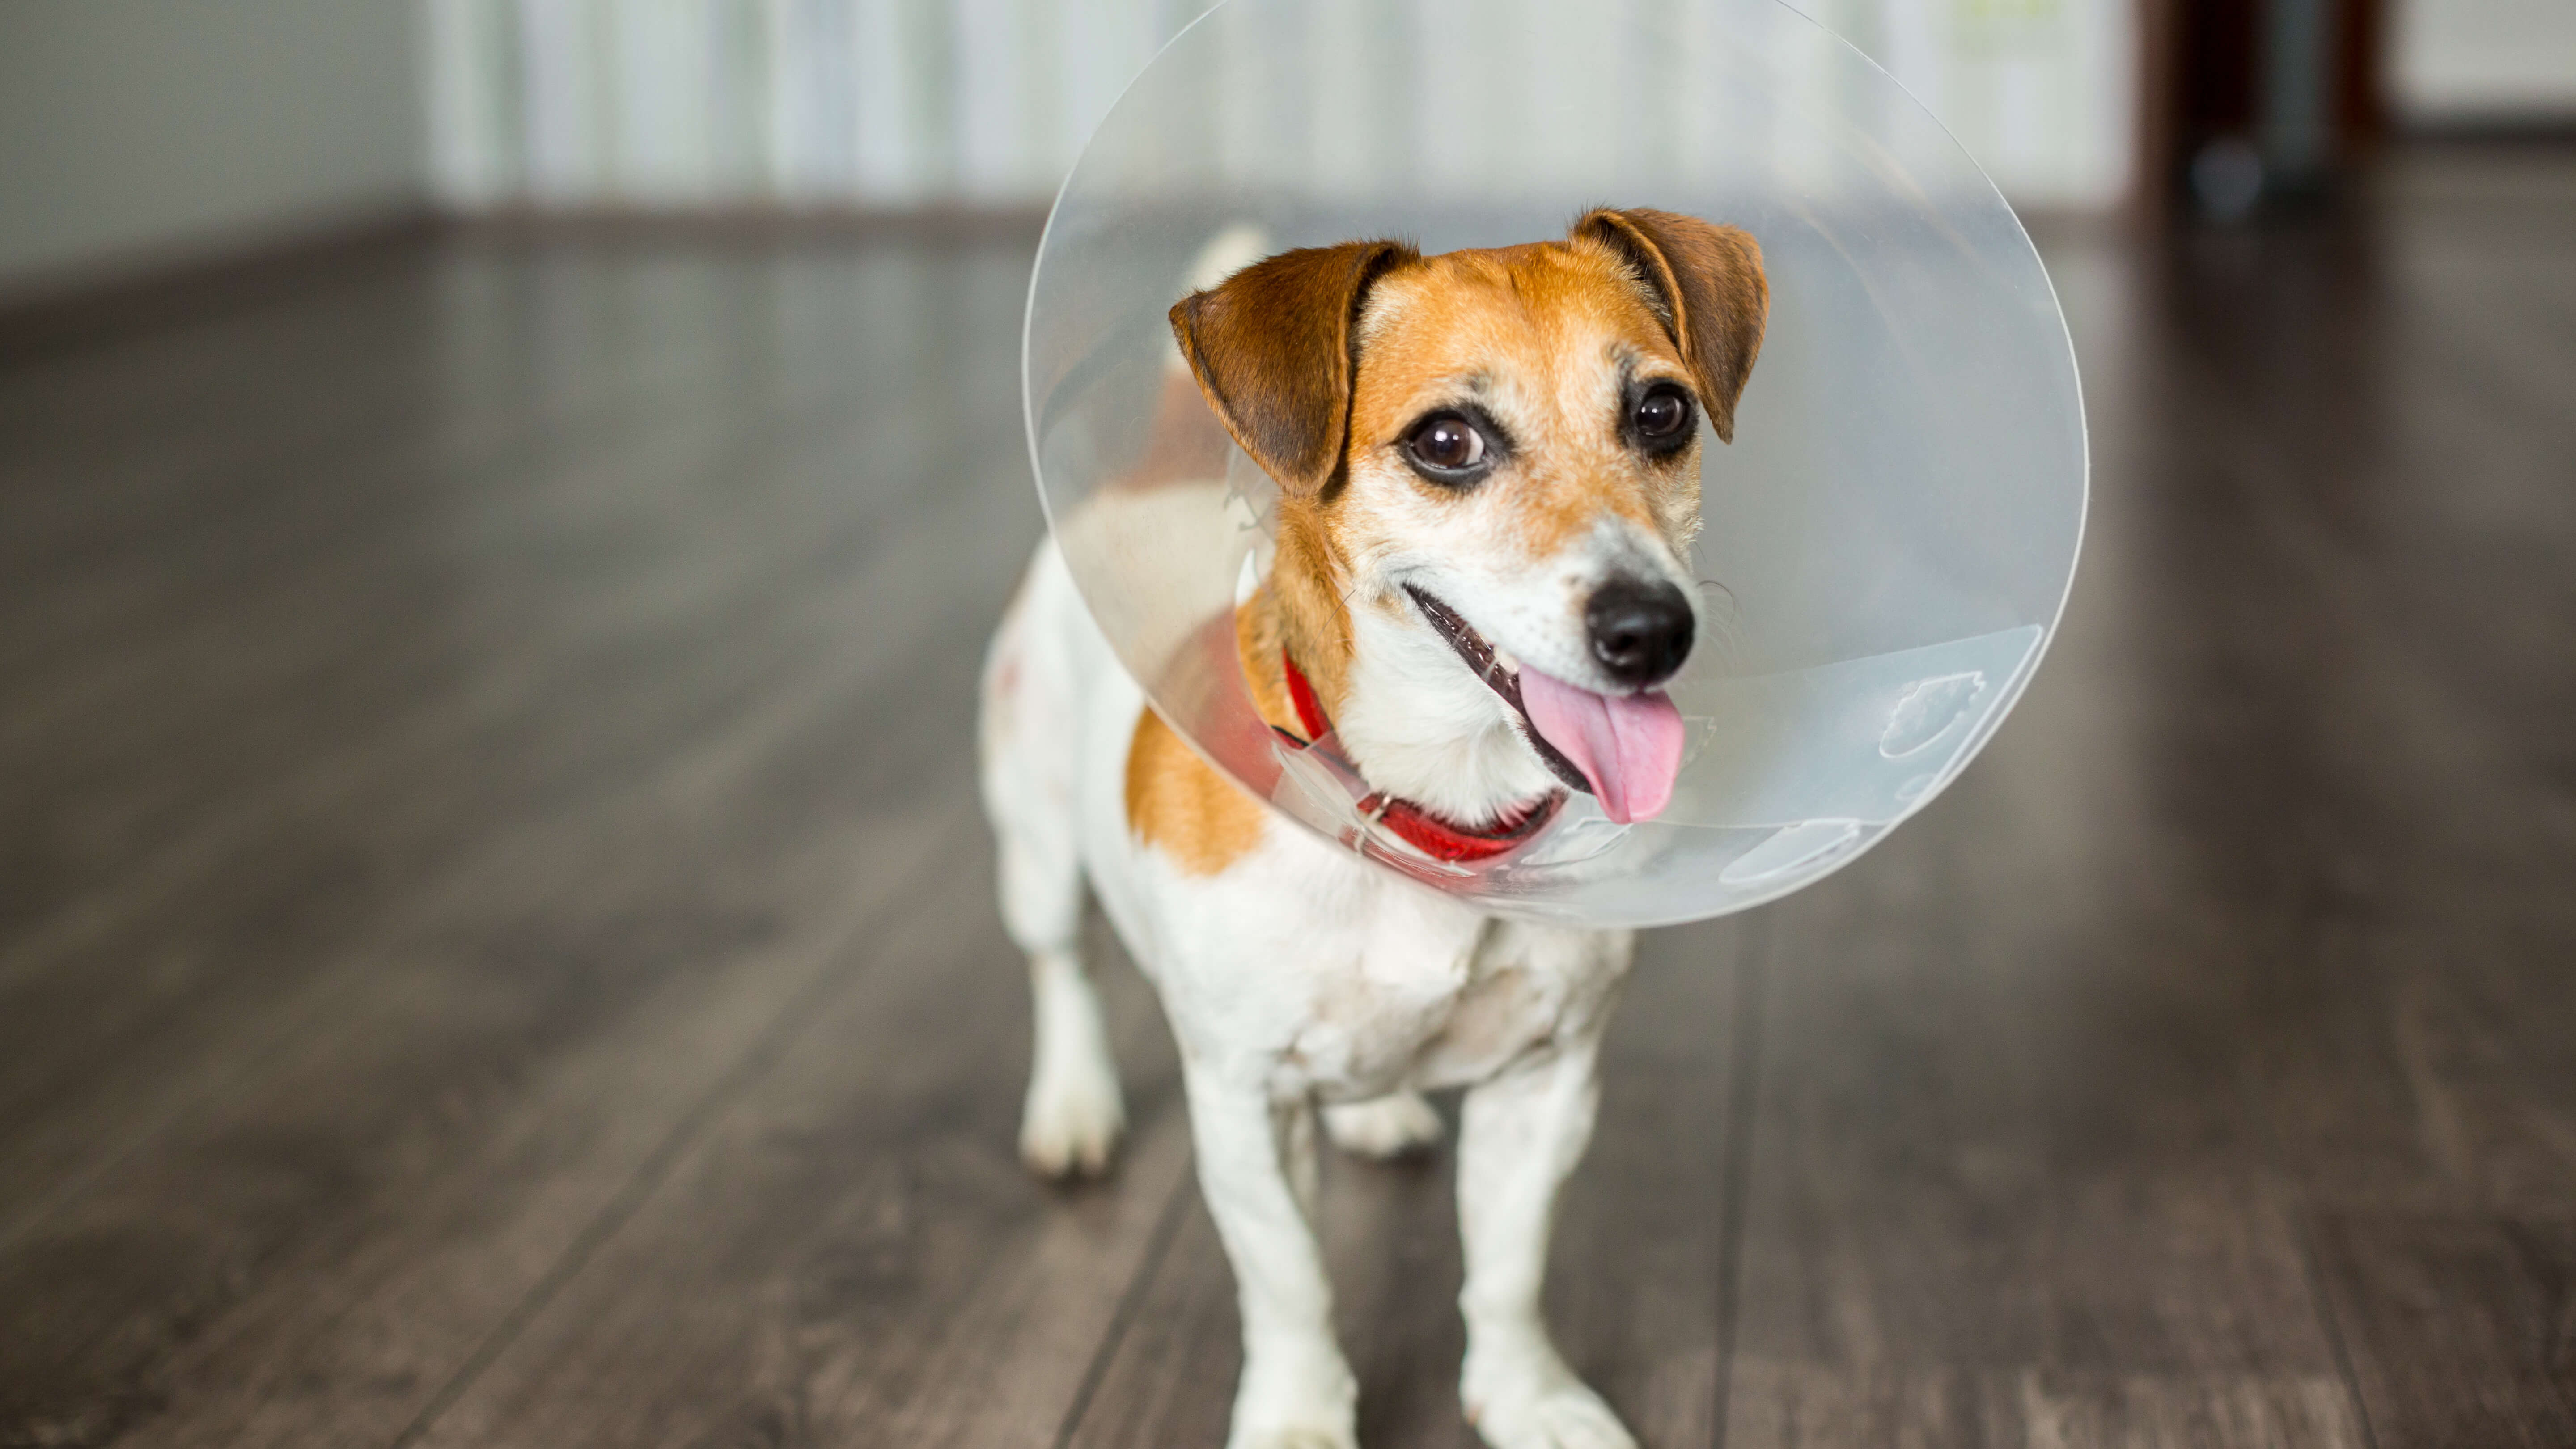 Should I Spay My Dog? 5 Commonly Asked Questions